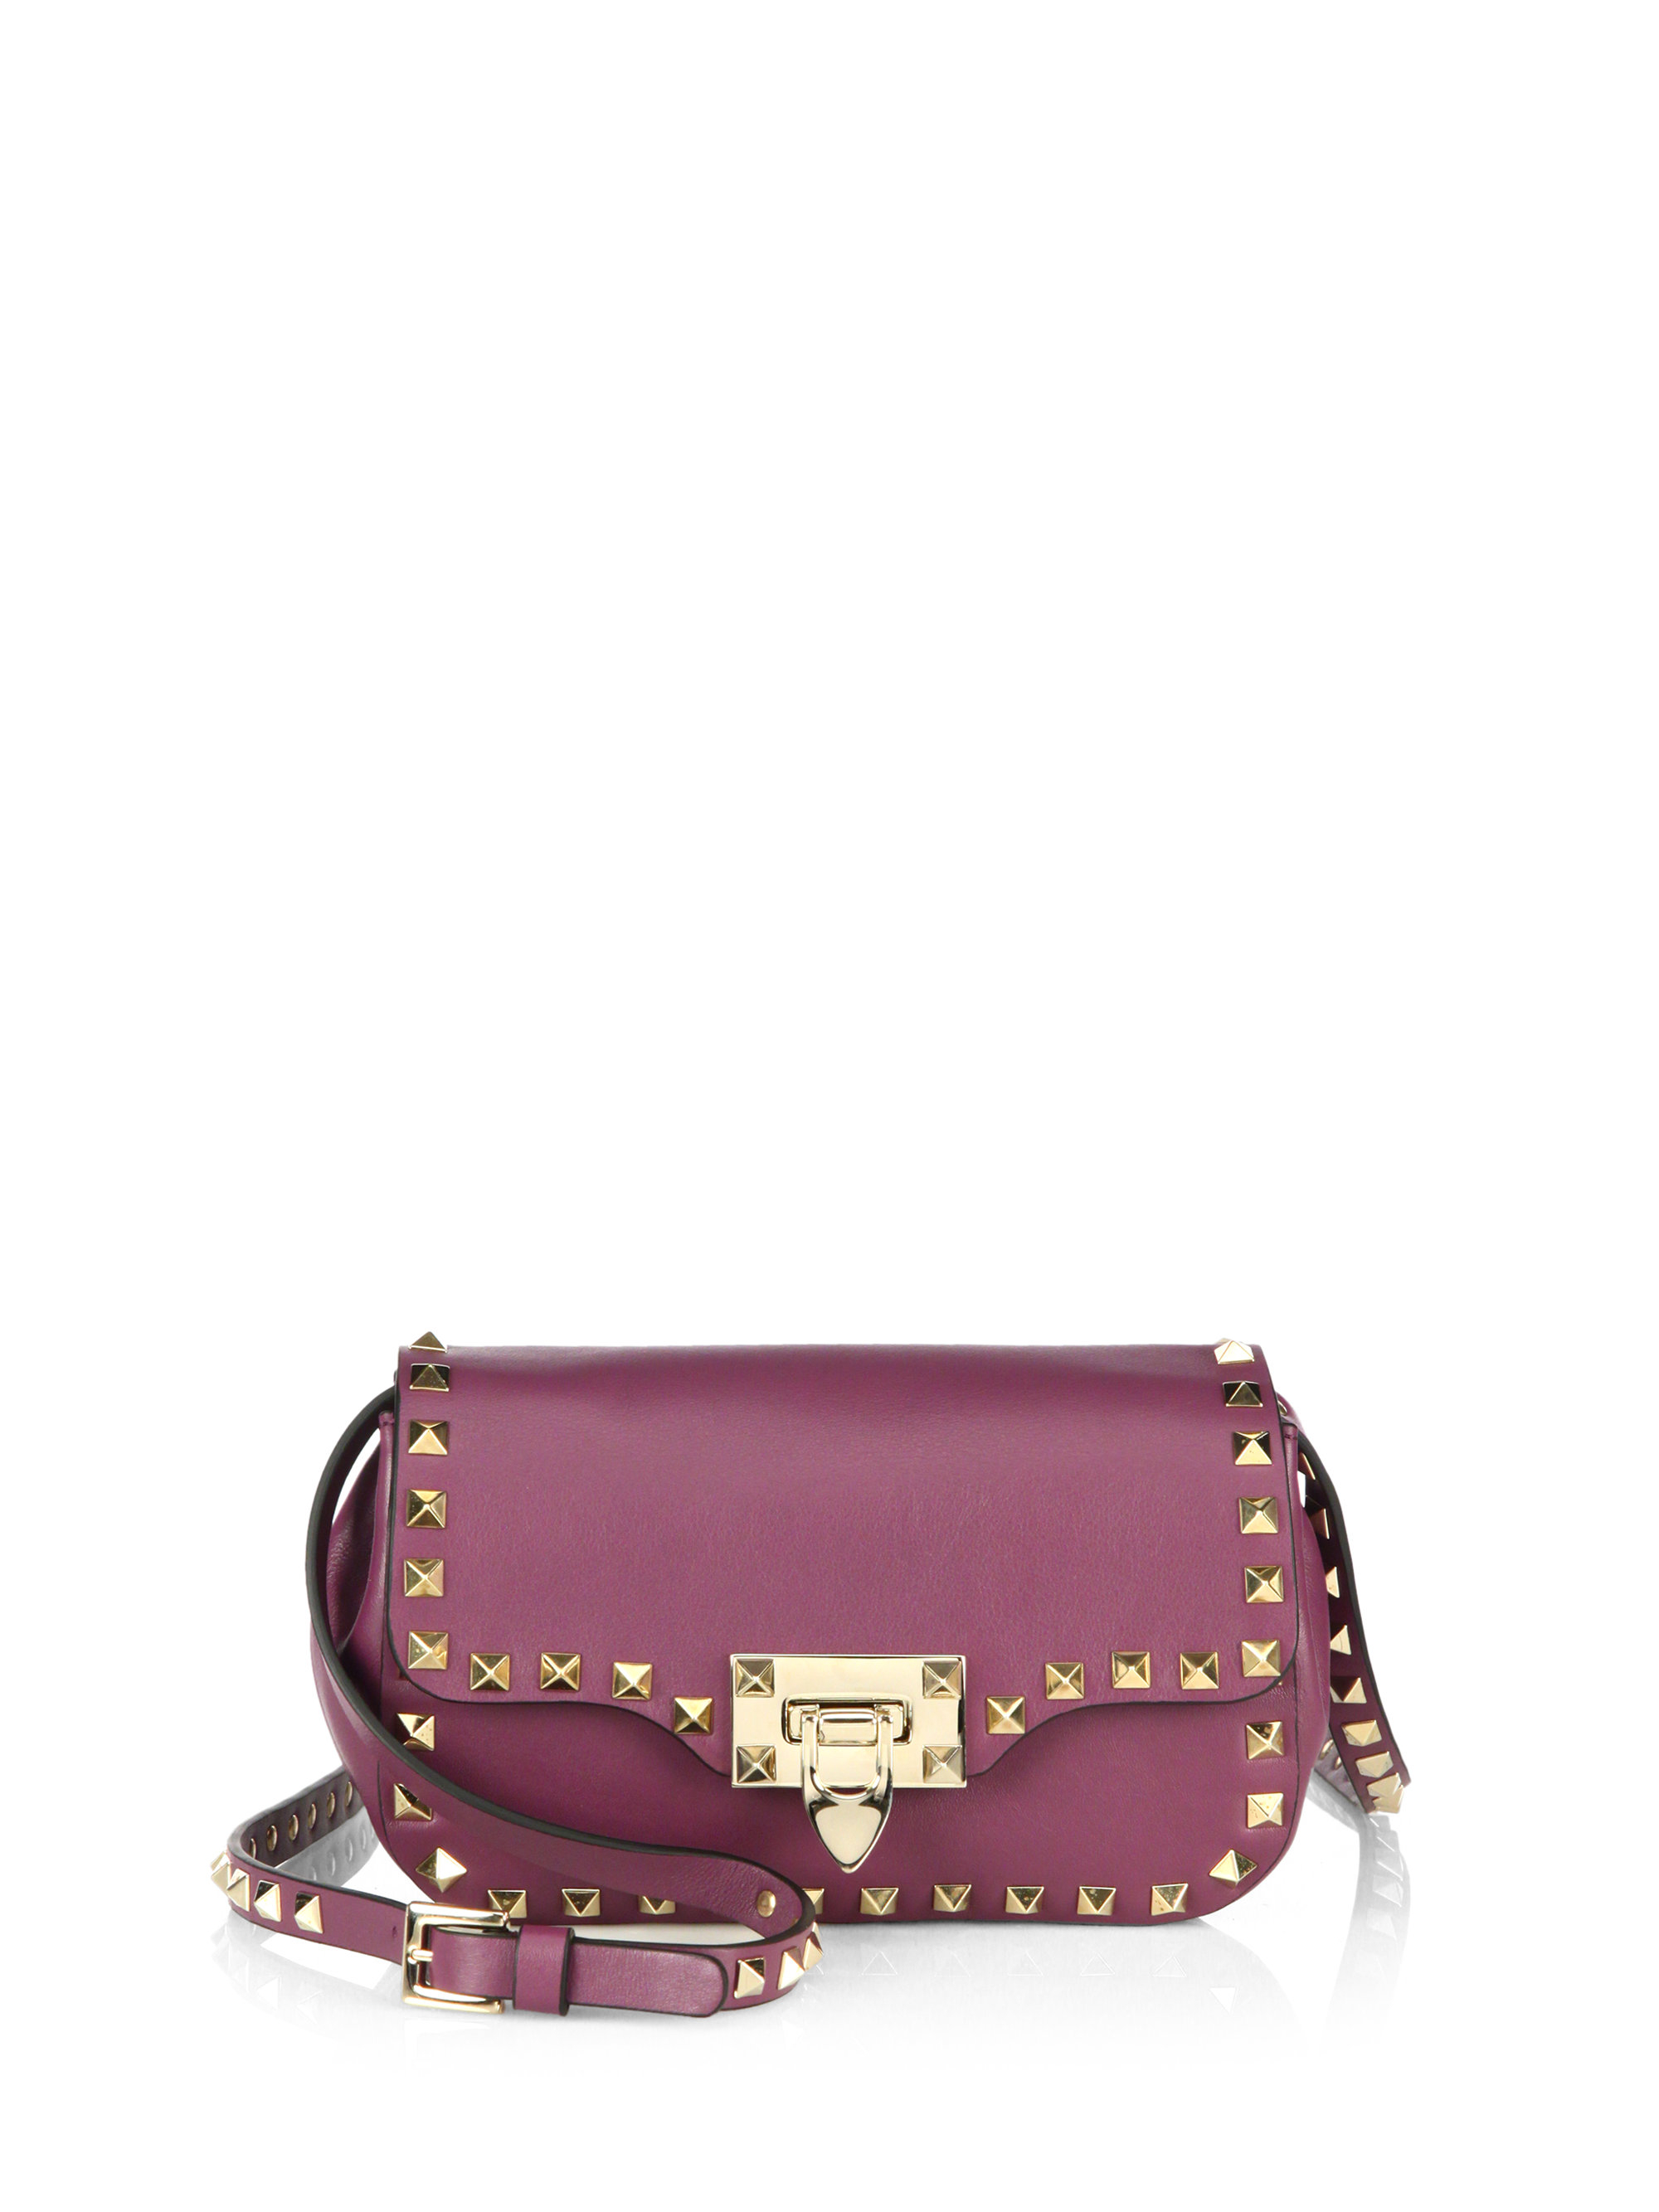 151df97506 Gallery. Previously sold at: Saks Fifth Avenue · Women's Valentino Rockstud  Bags